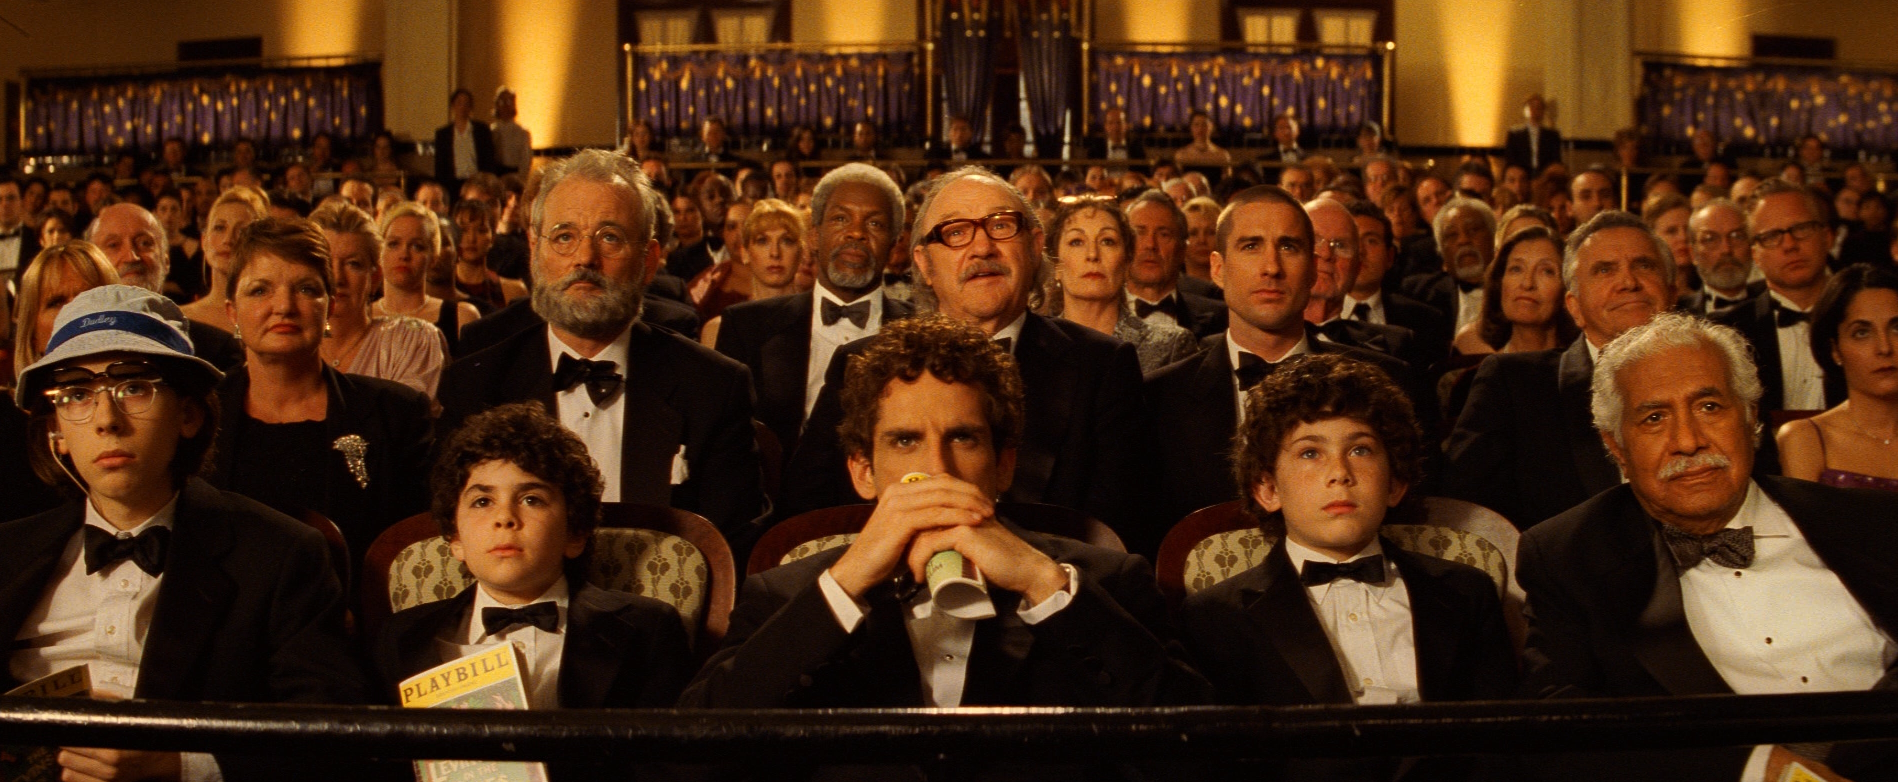 the cast of the royal tennebaums sits in the balcony of a theater